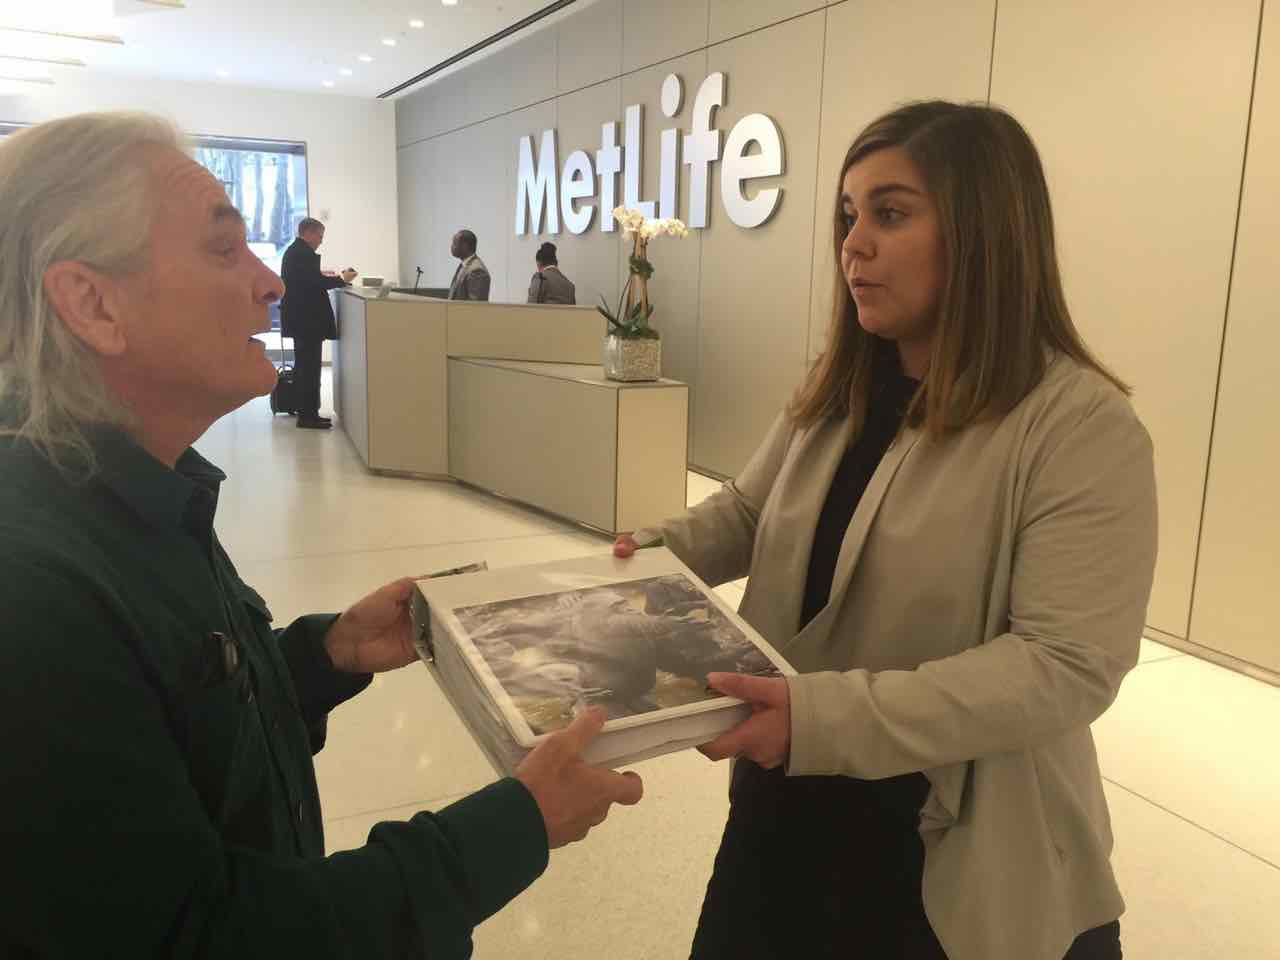 Primatologist Bob Ingersoll delivers petitions to a MetLife representative.